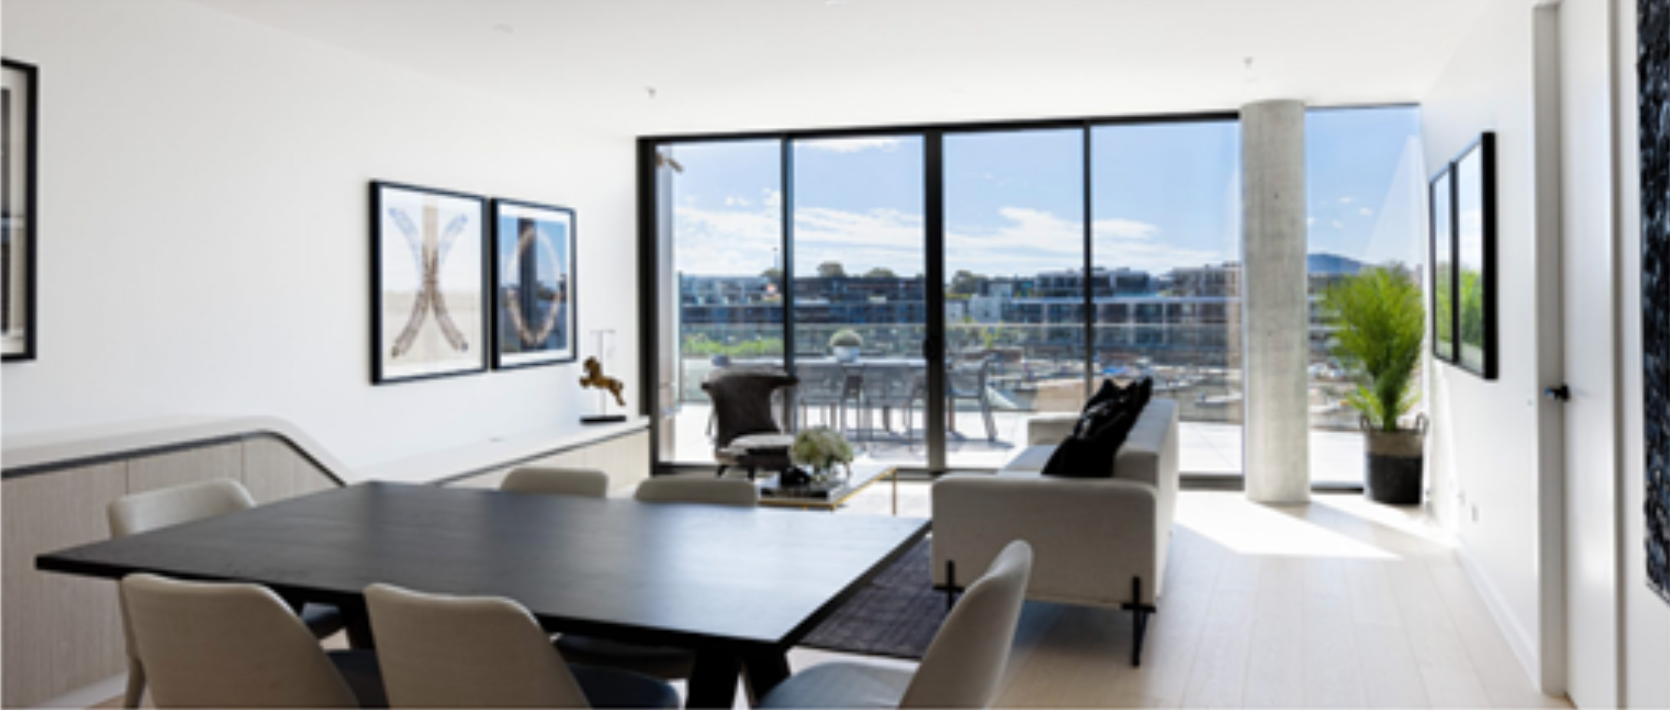 journey-home-interiors-griffith-downsizing-obstacles-open-concept-living-room-dining-room-floor-to-ceiling-windows